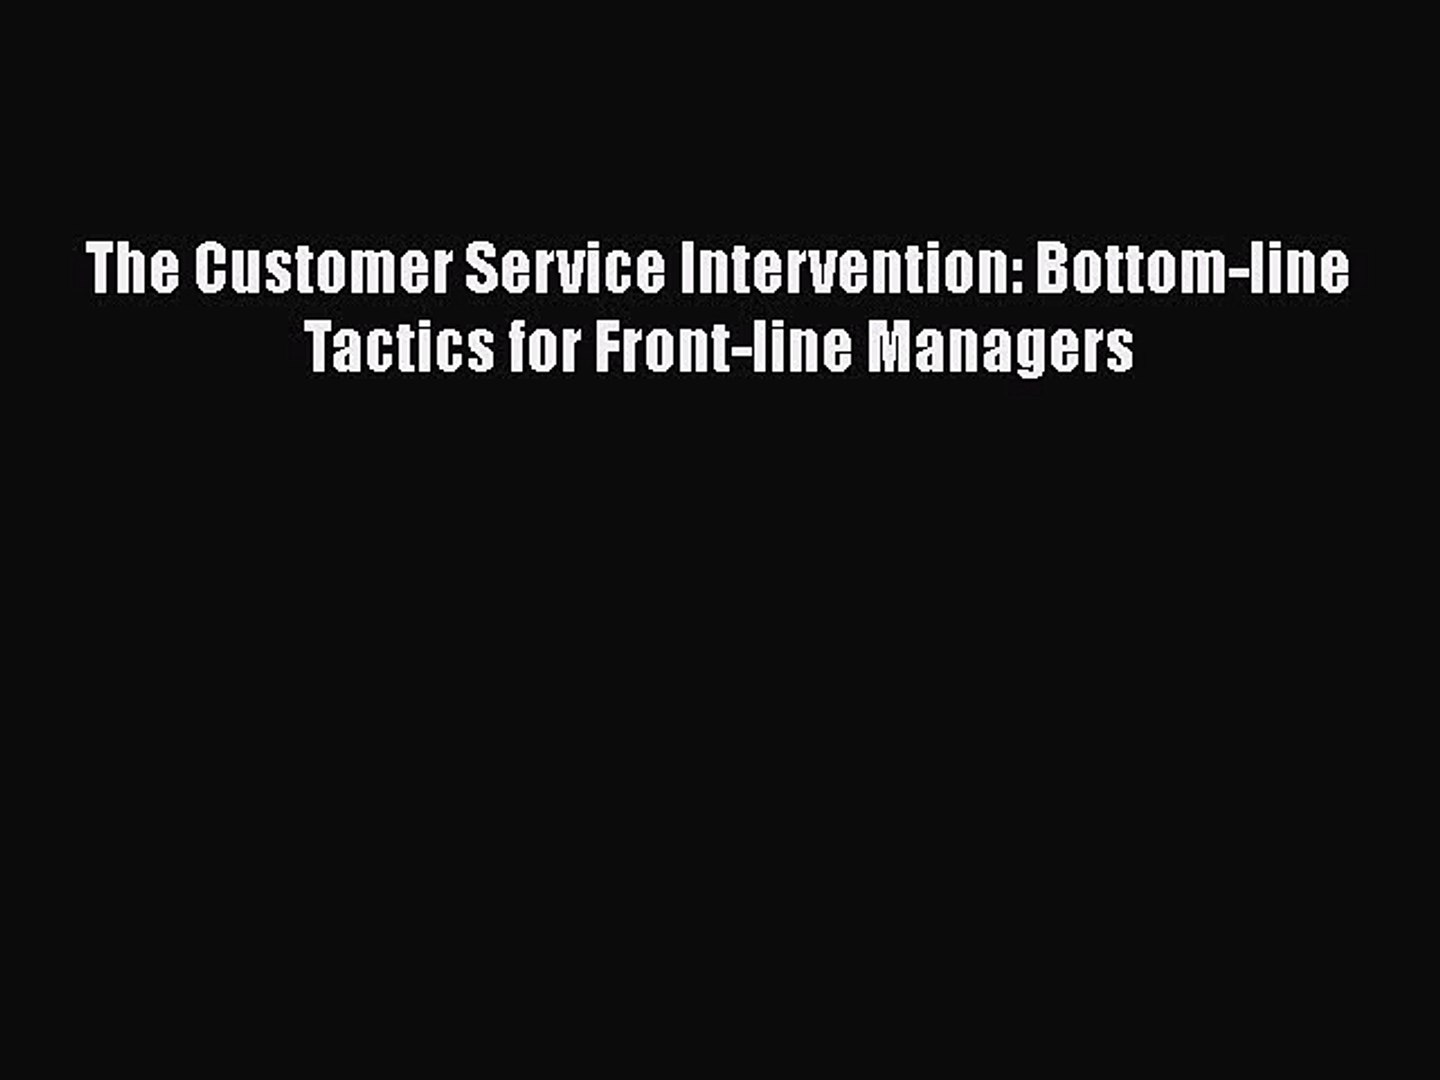 [Read book] The Customer Service Intervention: Bottom-line Tactics for Front-line Managers